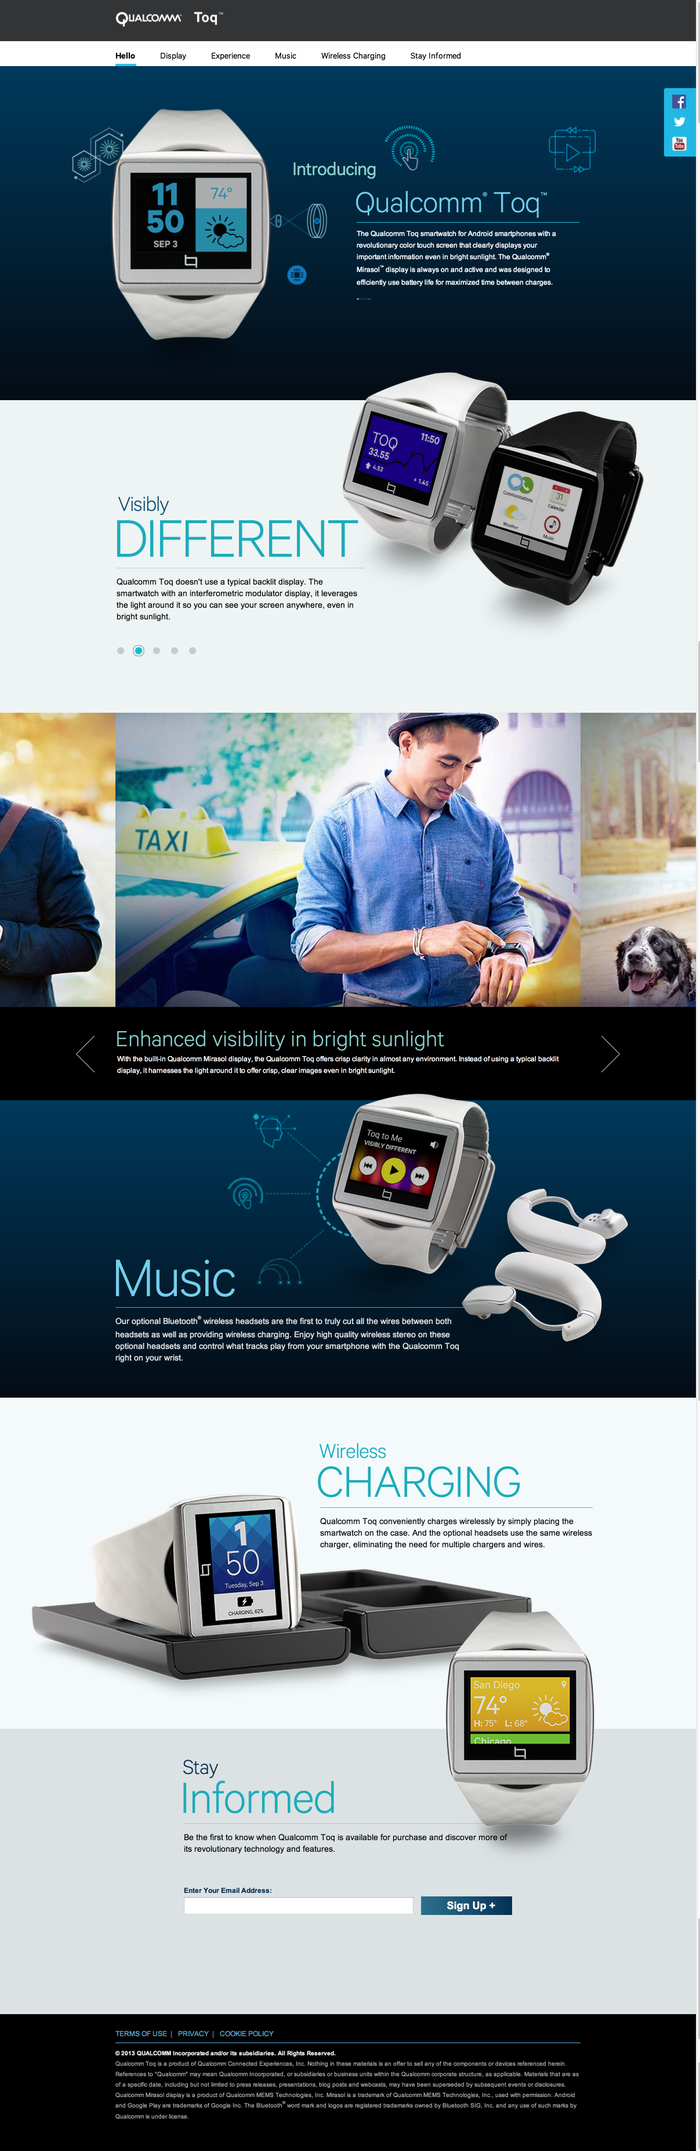 Qualcomm Toq Smartwatch.png